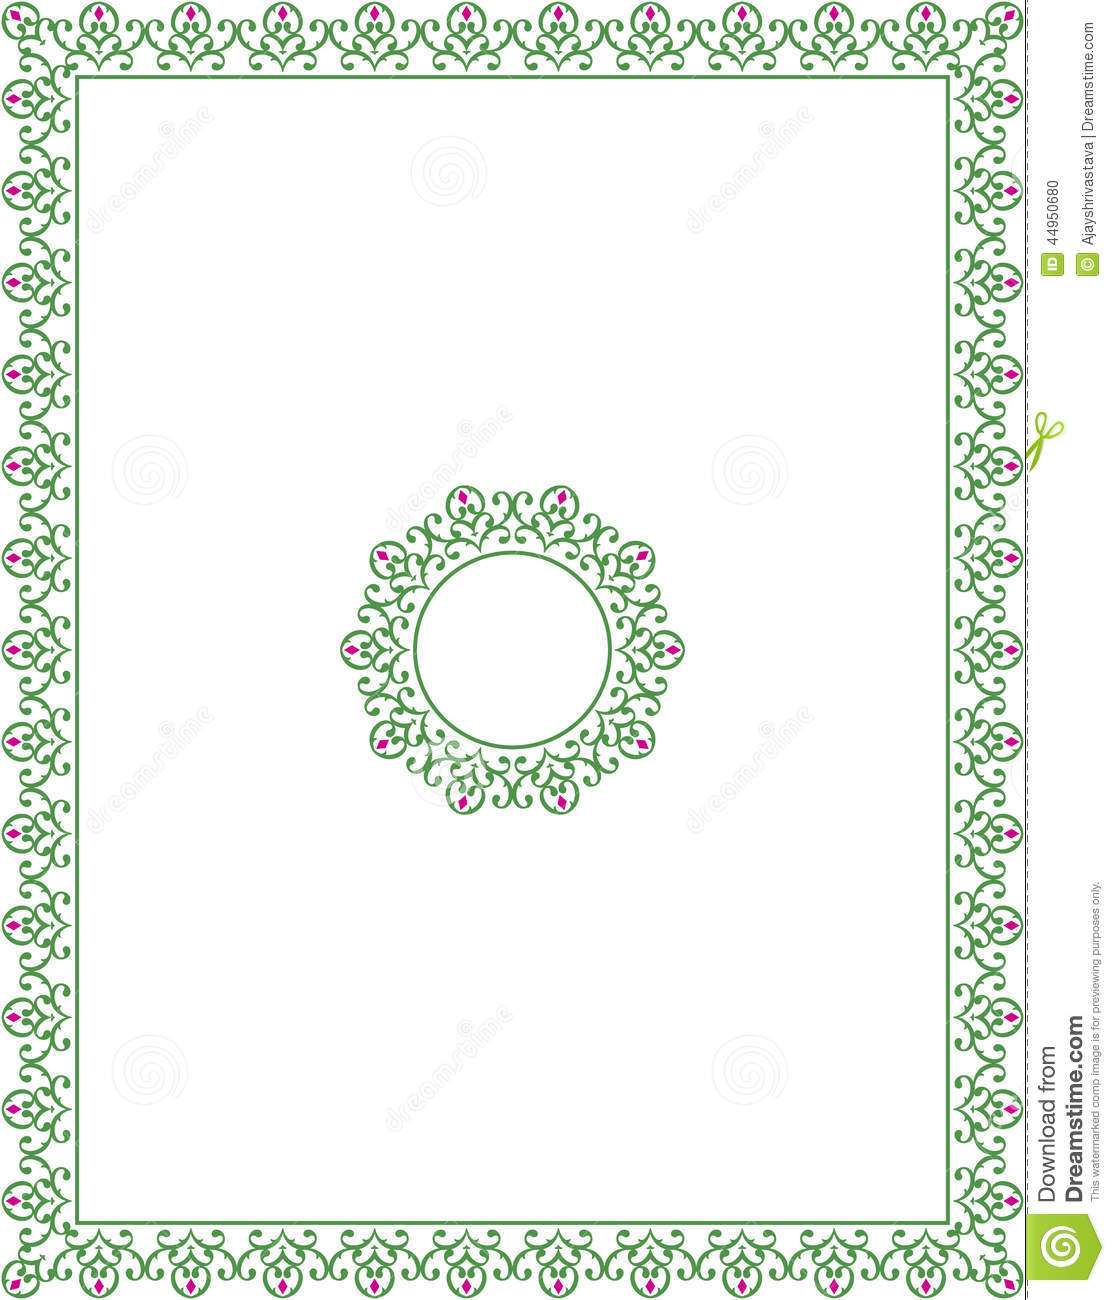 Frame Border Design Stock Vector - Image: 44950680